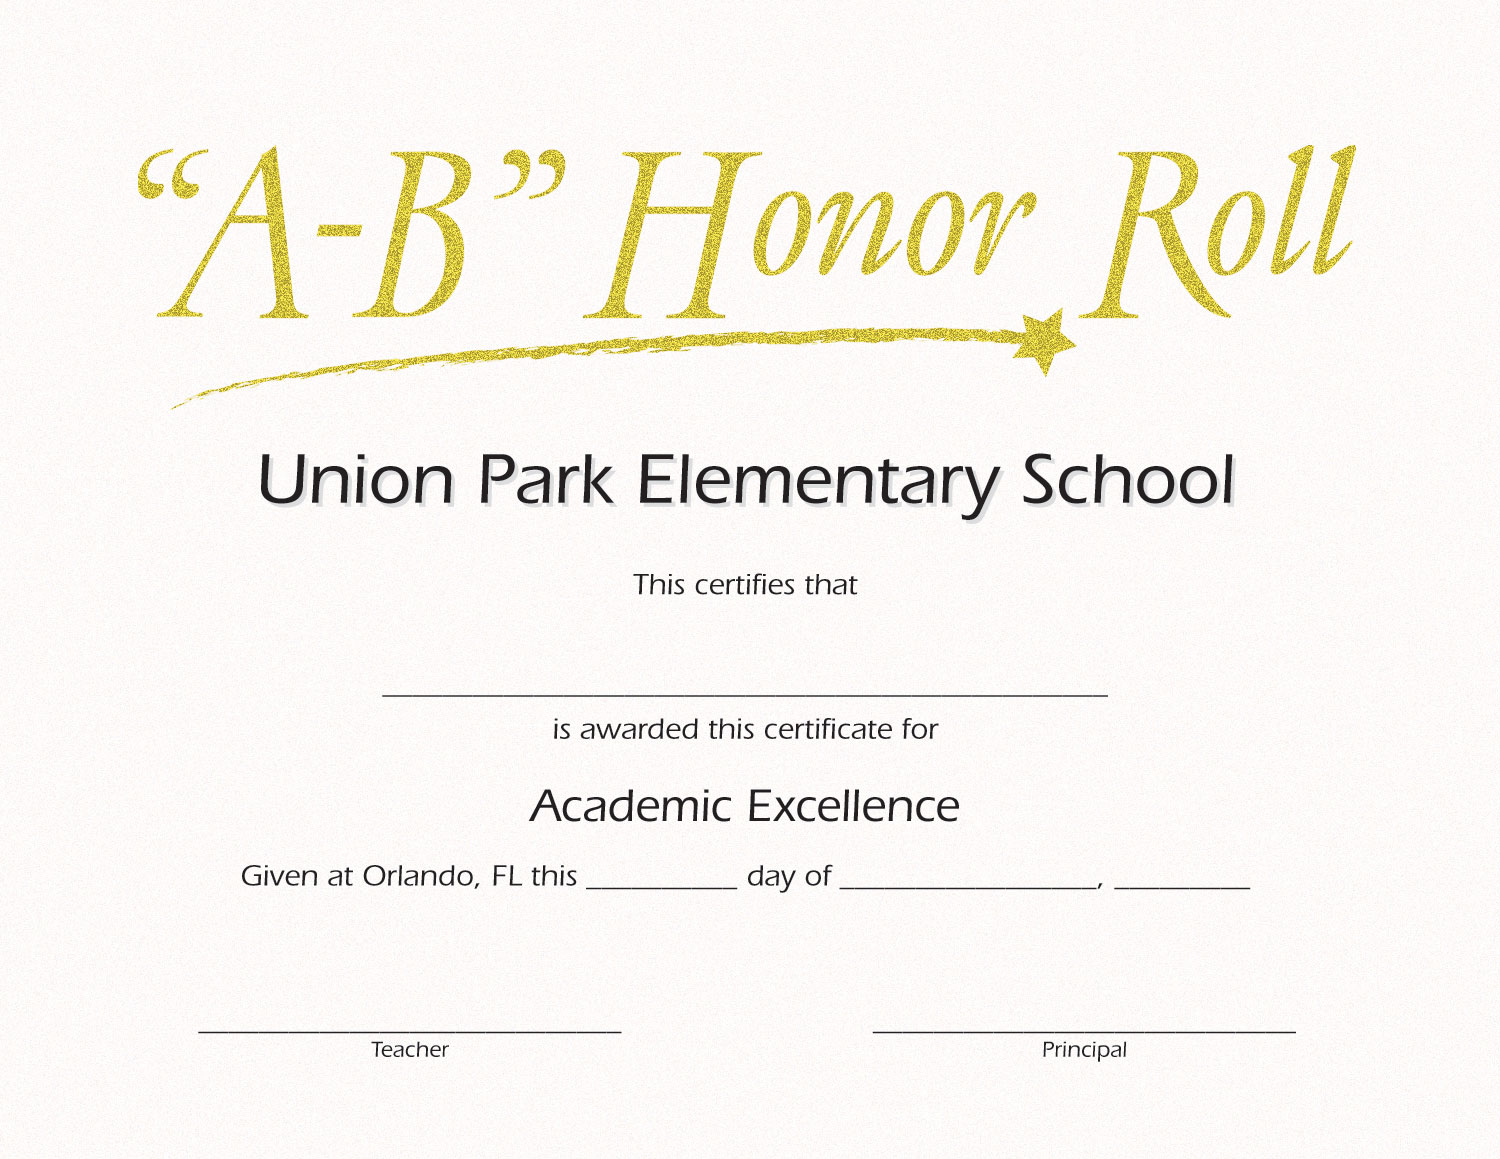 Ab honor roll custom certificate jones school supply for A b honor roll certificate template